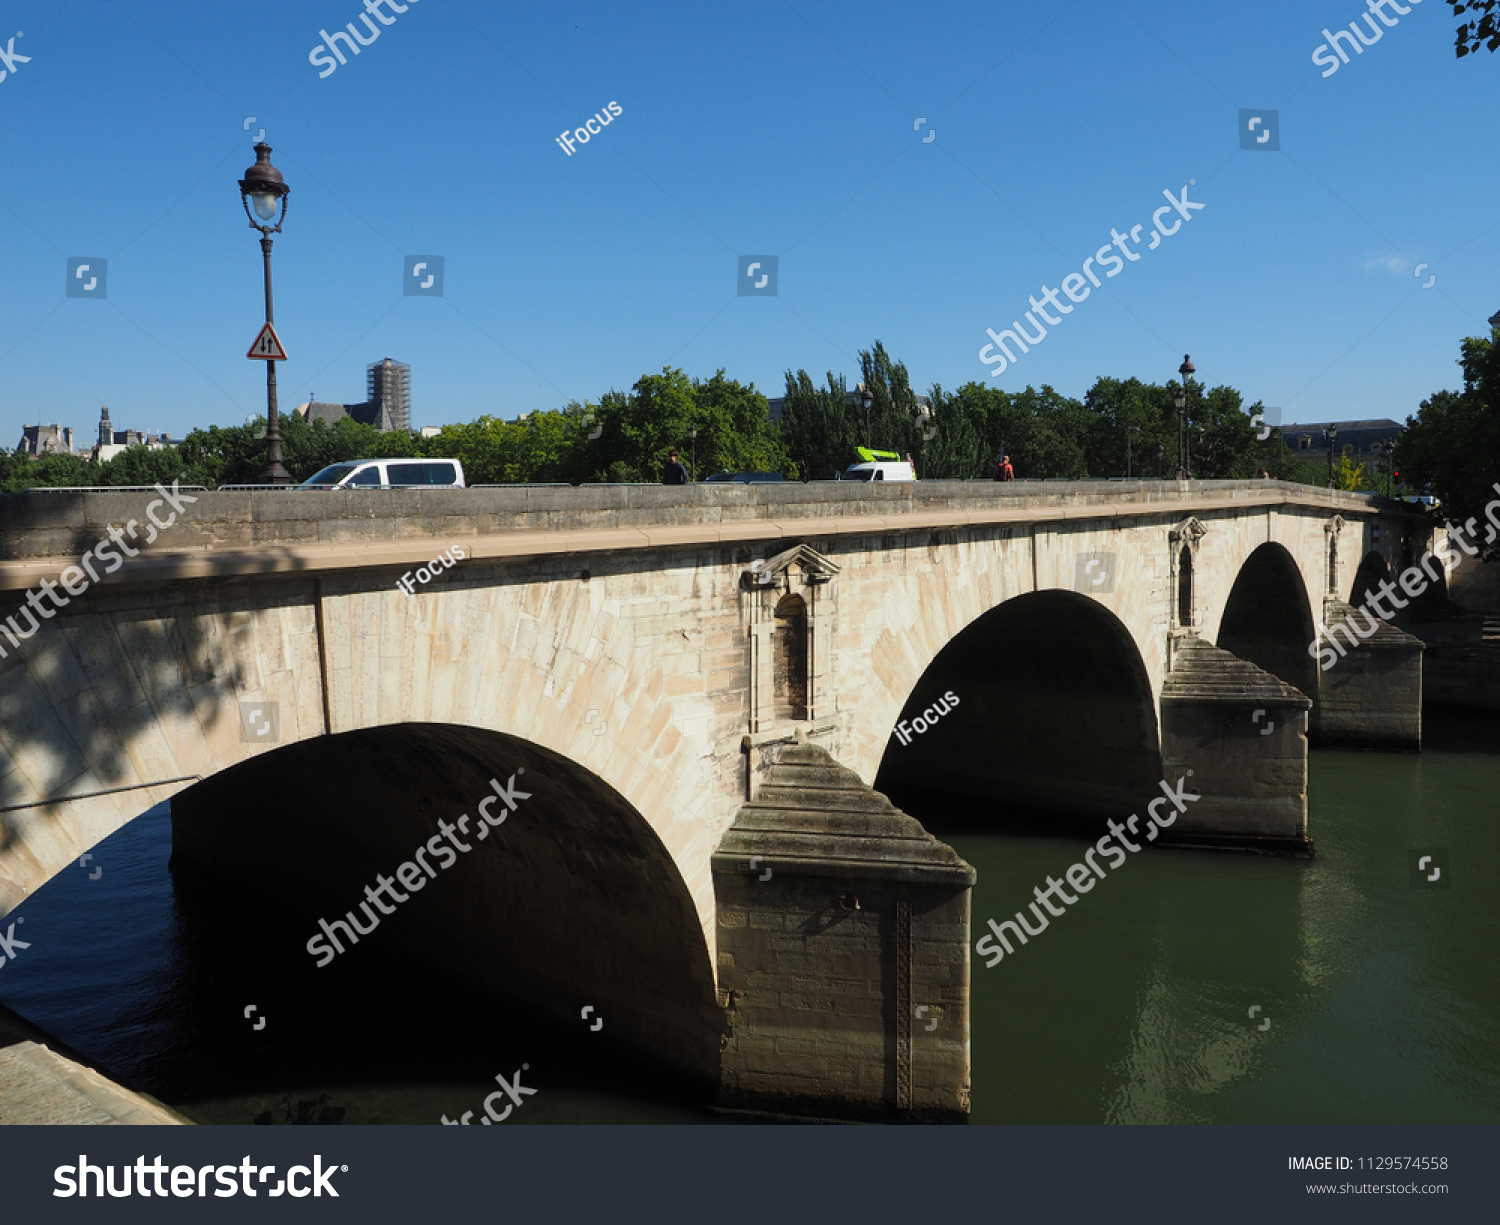 PARIS, FRANCE - JUNE 28, 2018: Pedestrians and vehicles use Pont Marie to cross River Seine on June 28, 2018 in Paris, France.